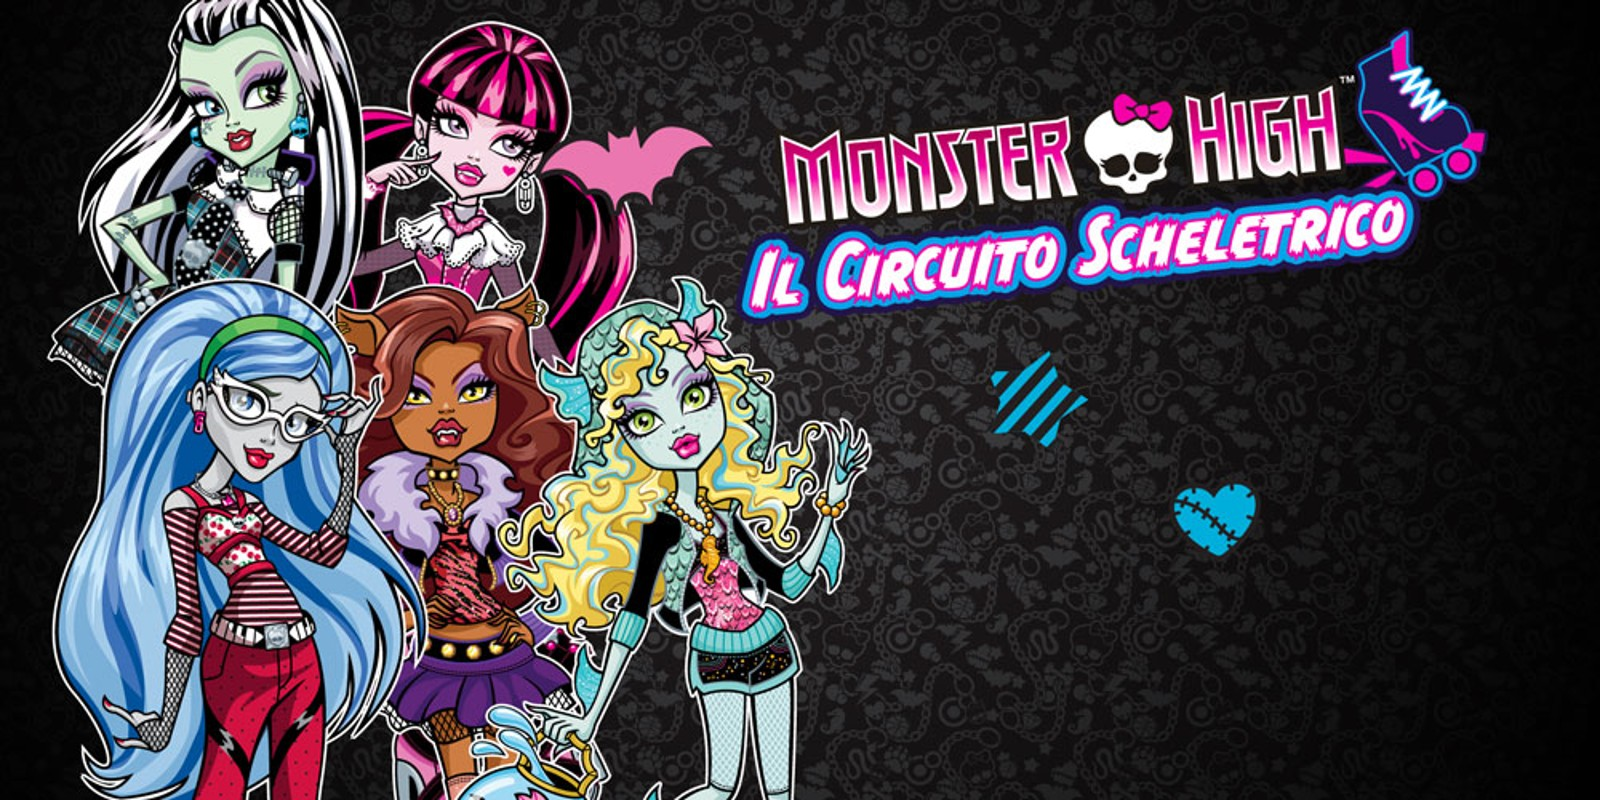 Monster High Il Circuito Scheletrico